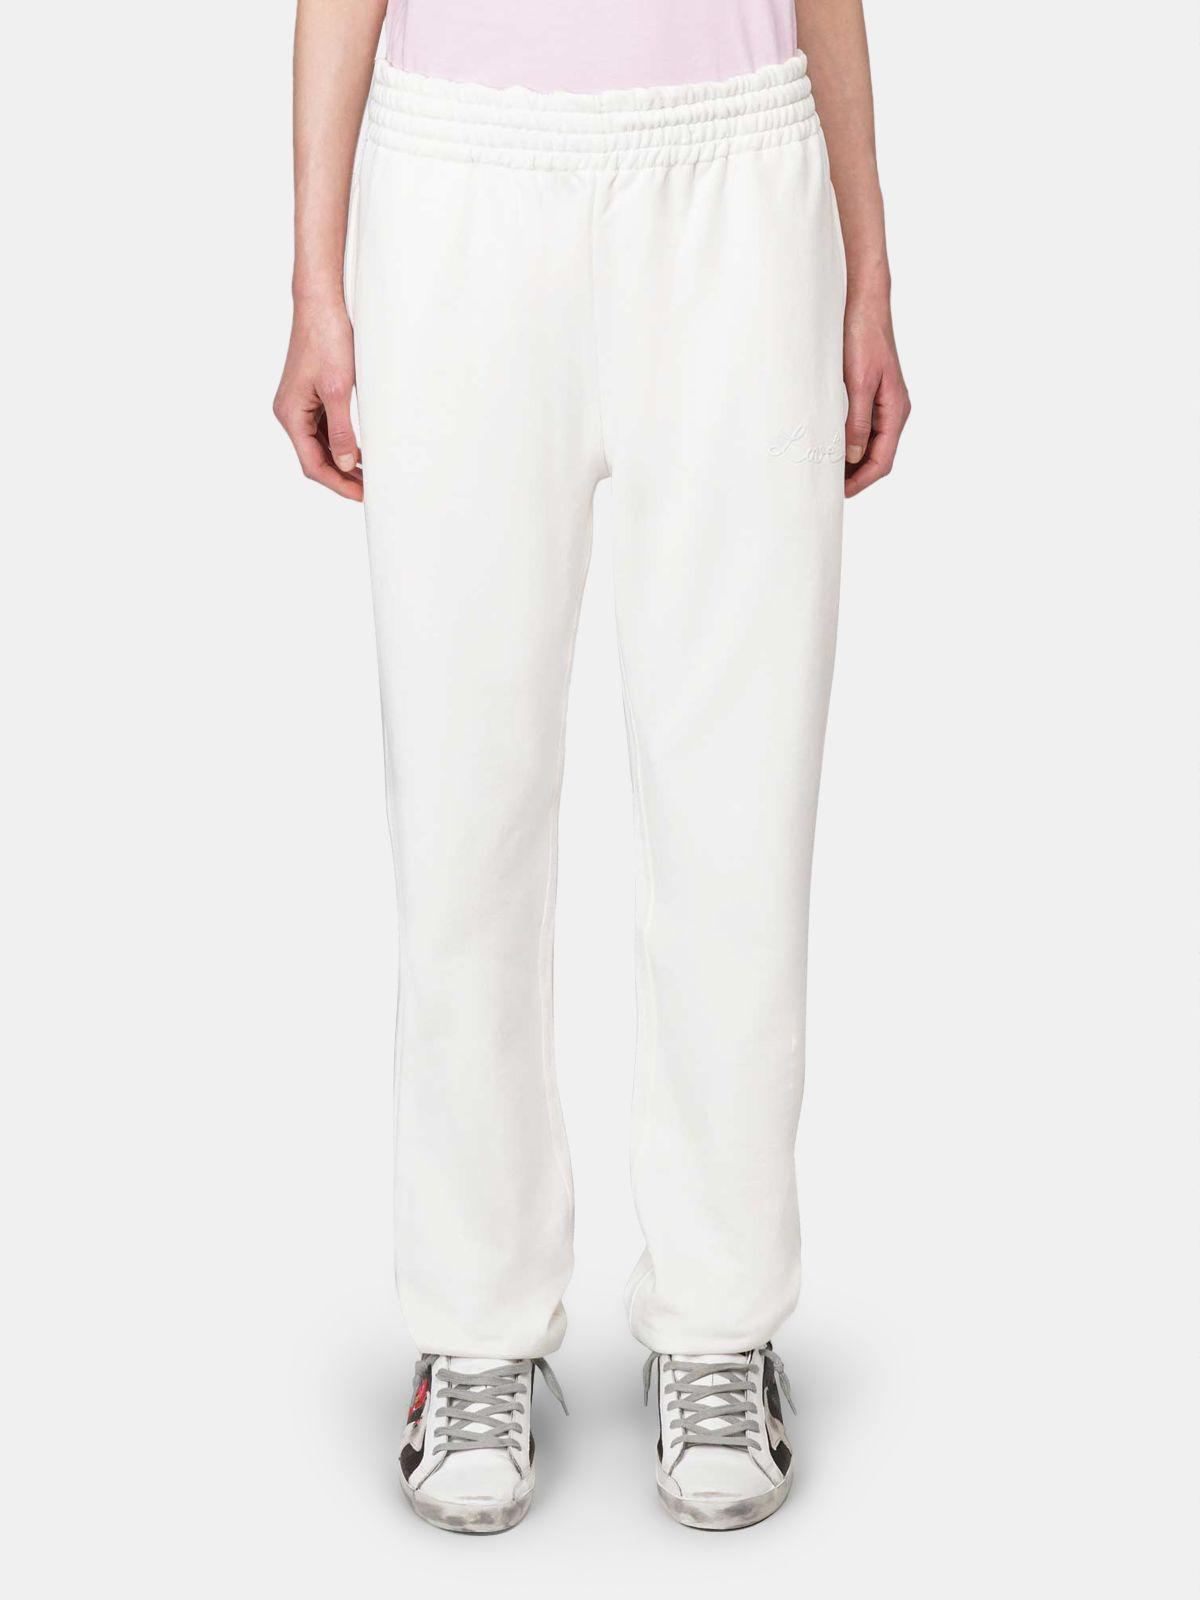 White Hamm joggers with Love embroidery